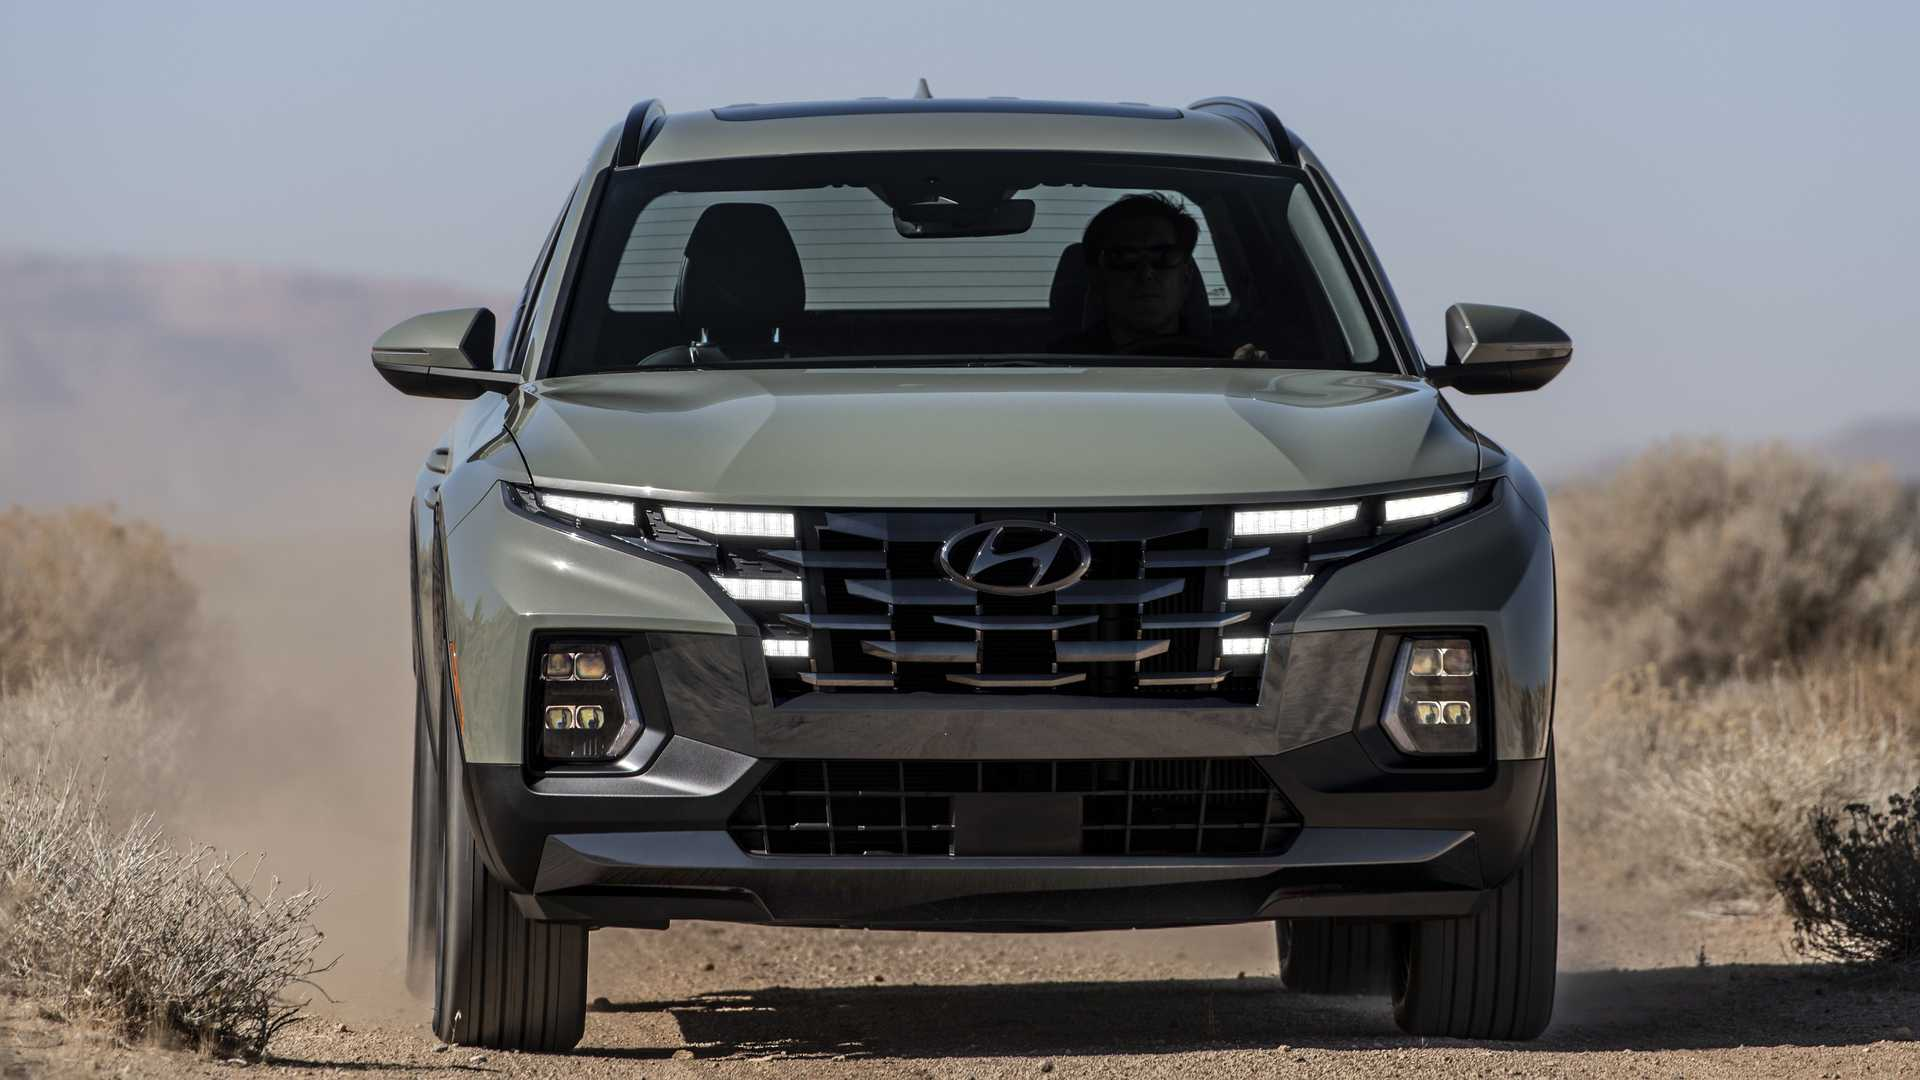 The Hyundai pickup, which the company first revealed six years ago, is finally here and should be available to order in North America in late April.